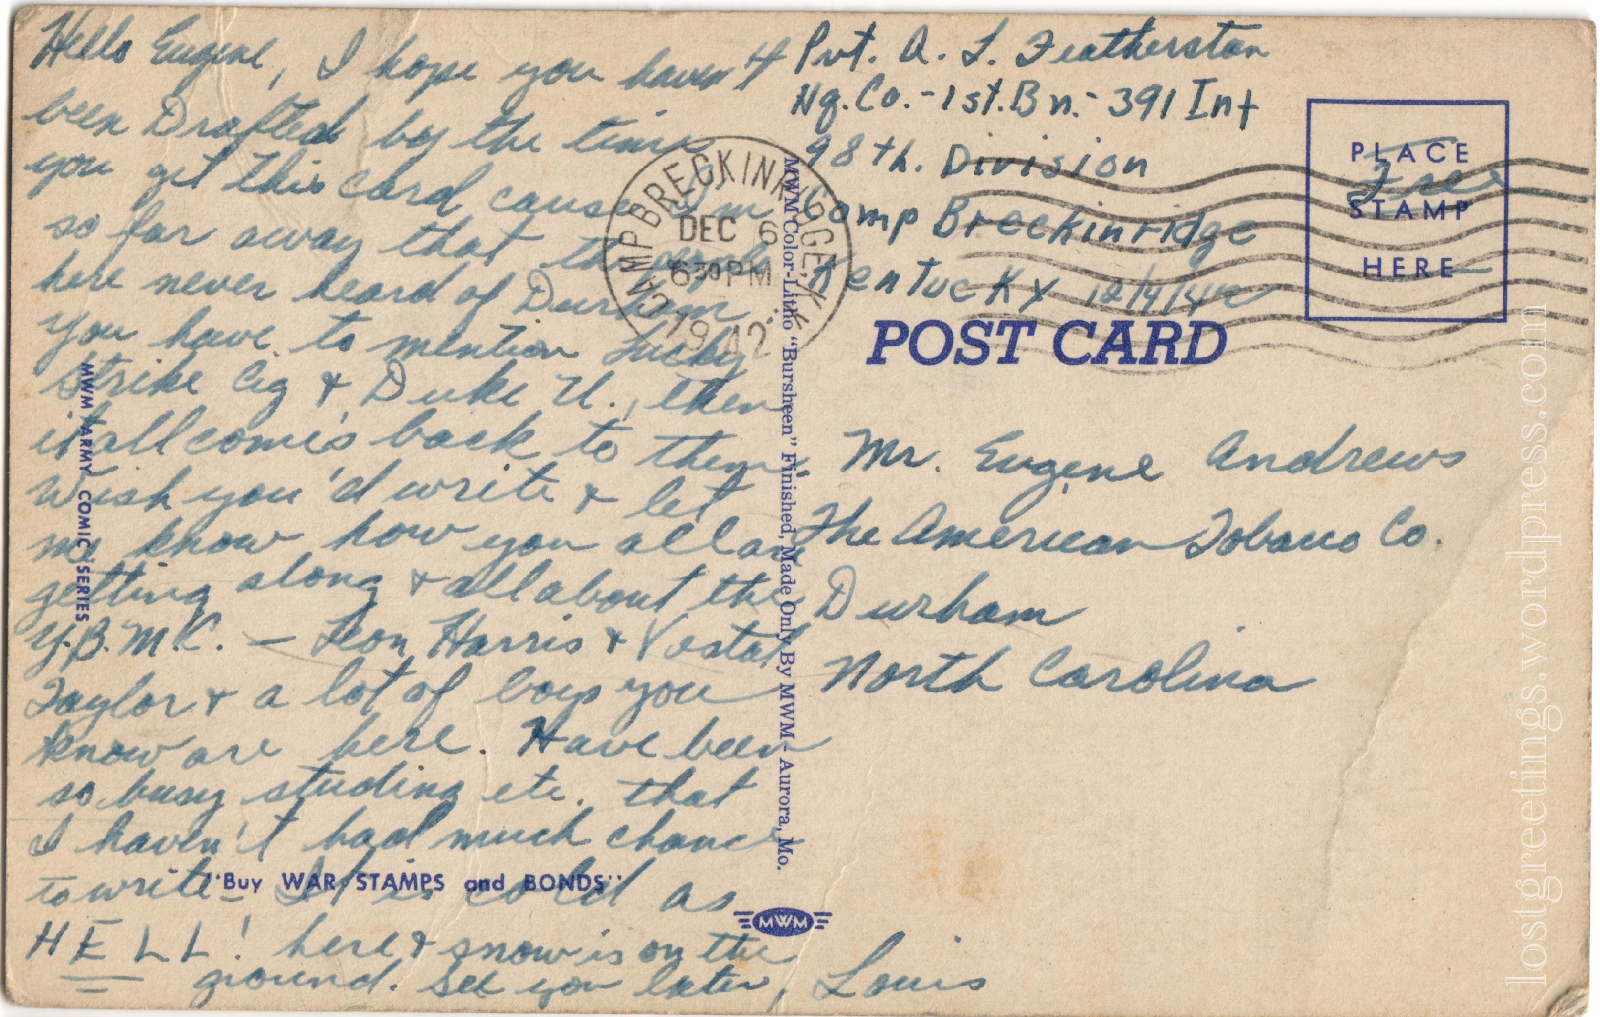 Postcard from Camp Breckinridge, Kentucky 1940s